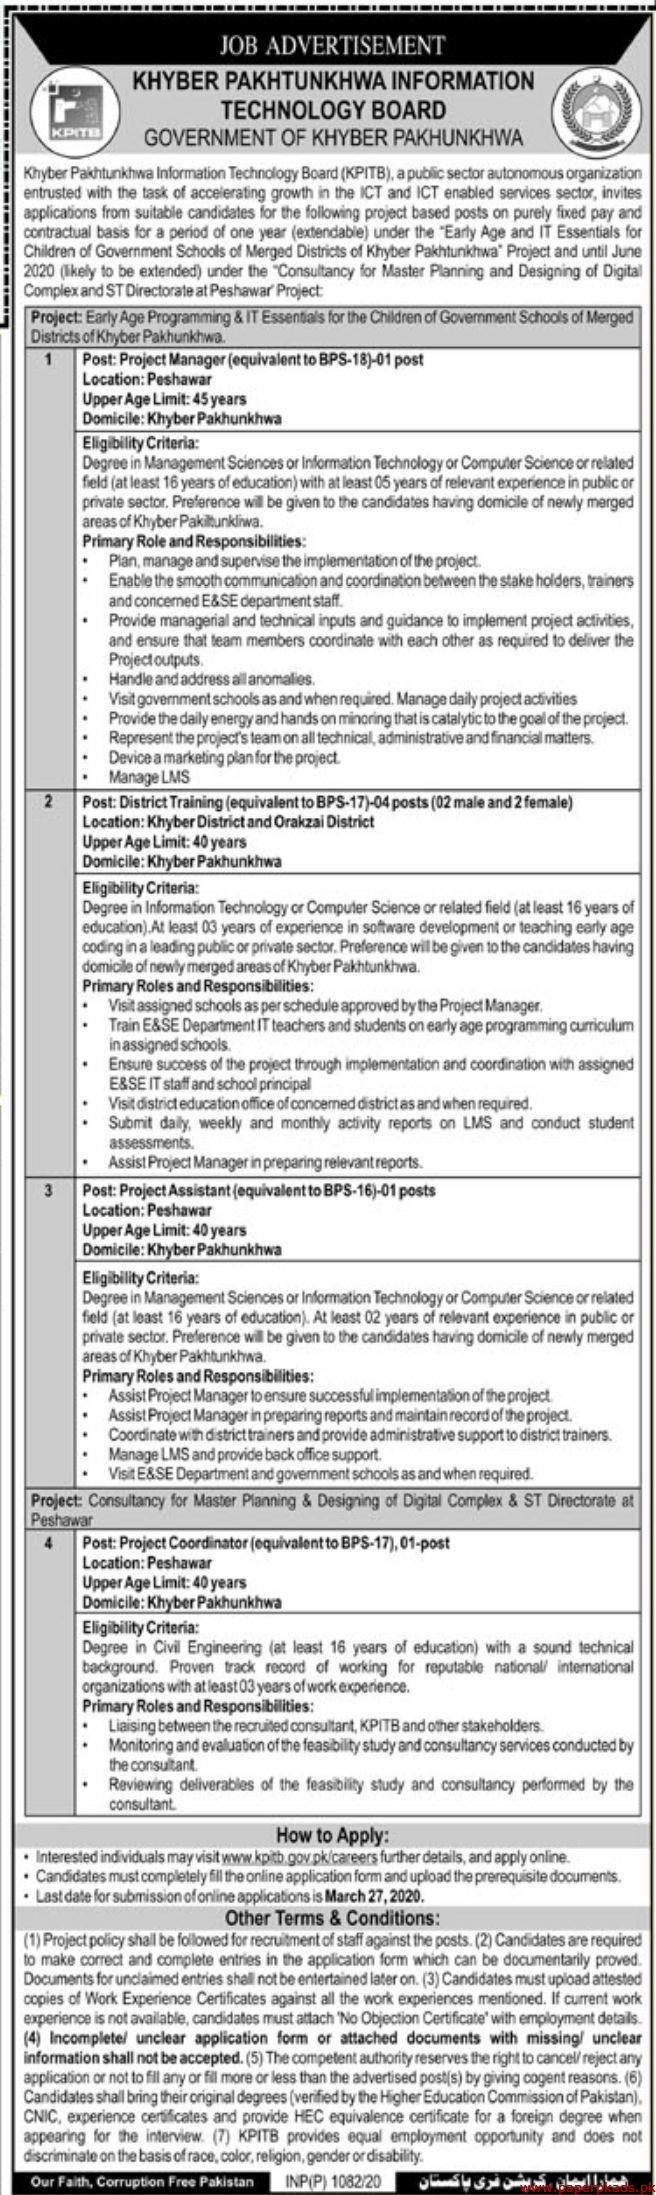 Khyber Pakhtunkhwa Information Technology Board Jobs 2020 Latest